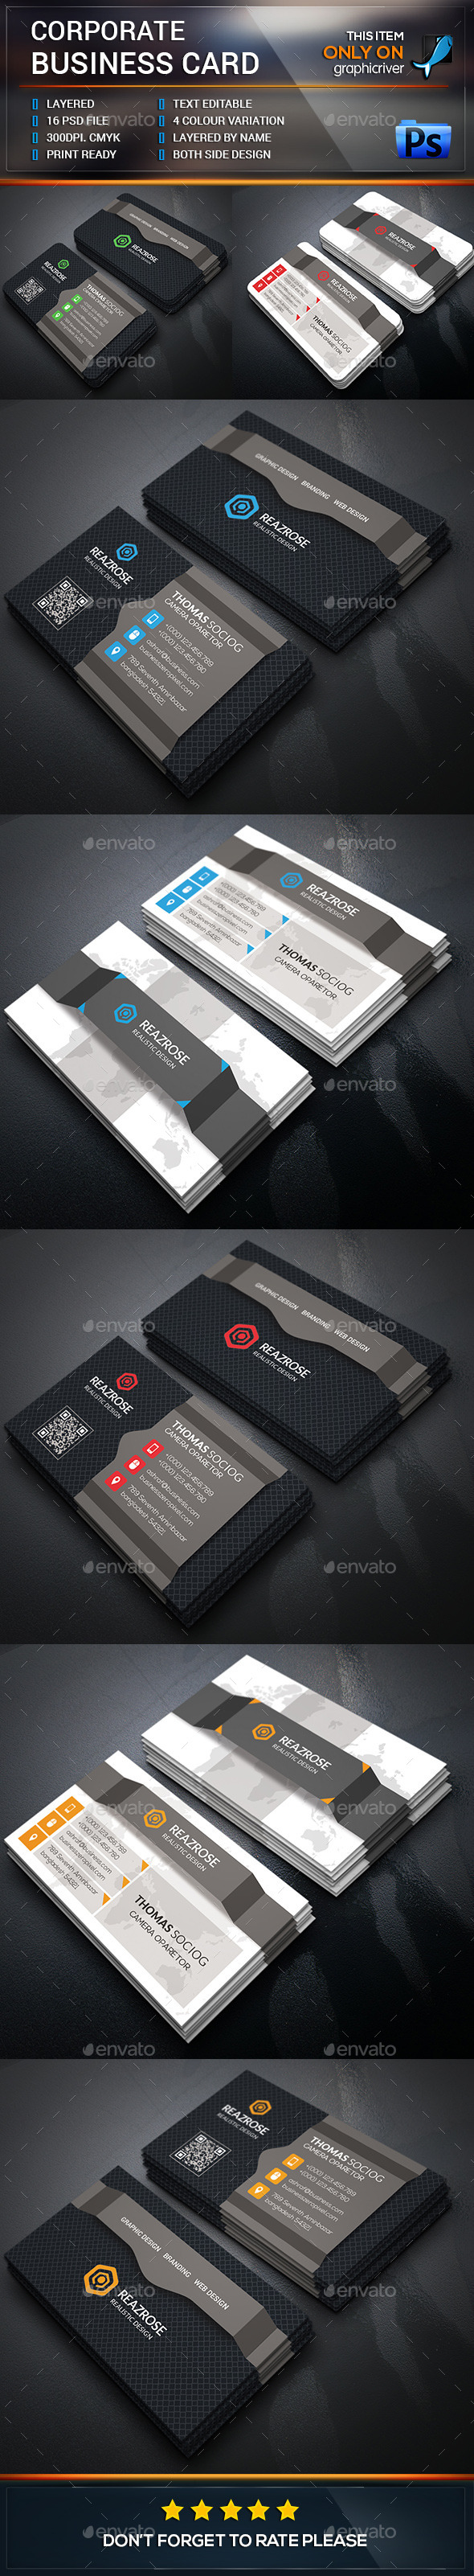 Corporate business card template design buy now http corporate business card template buy now reheart Choice Image